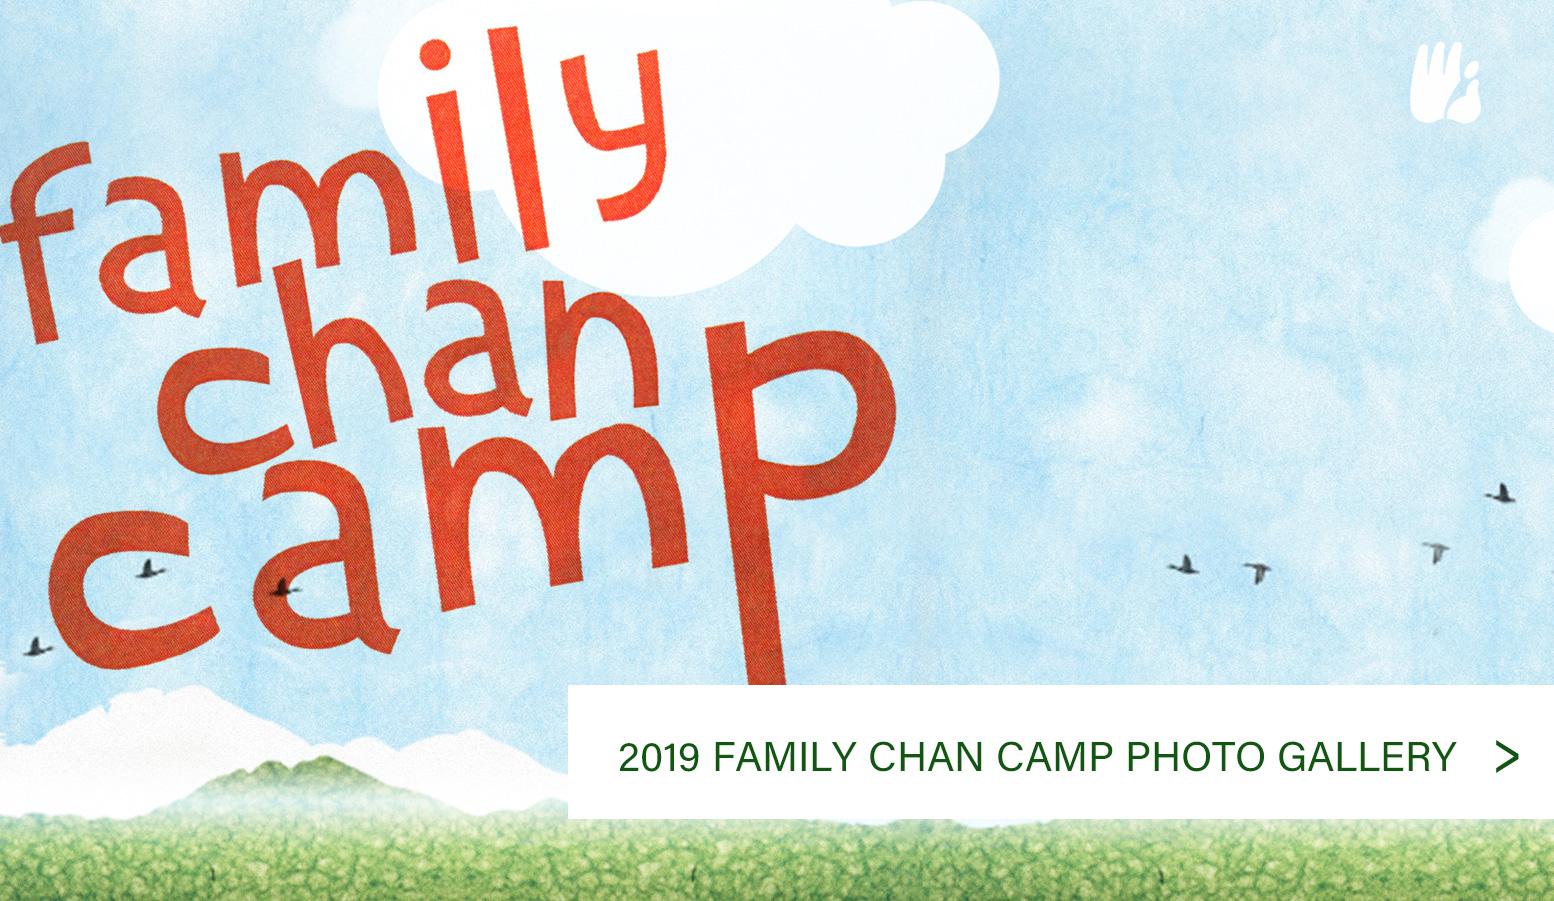 2019 Family Chan Camp Photos